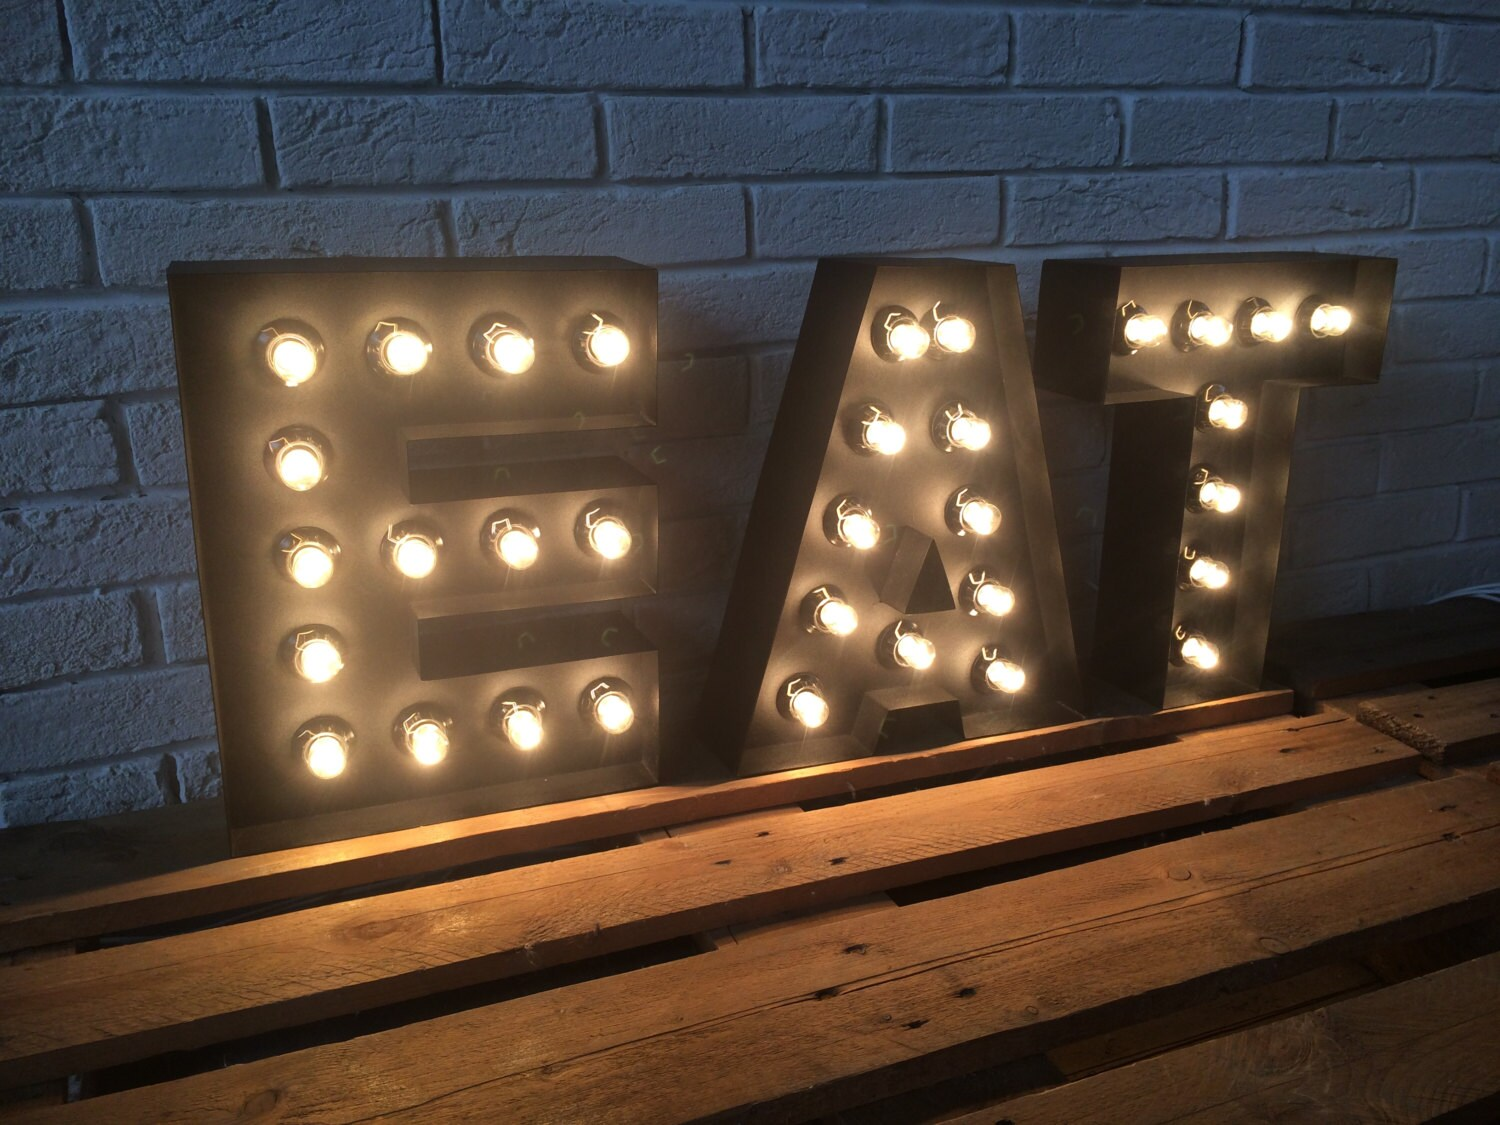 Bar Light Bulb Sign Wiring Diagrams Schematics Neon Diagram Kitchen Or Restaurant Decor Large Eat Up Letters Of 8